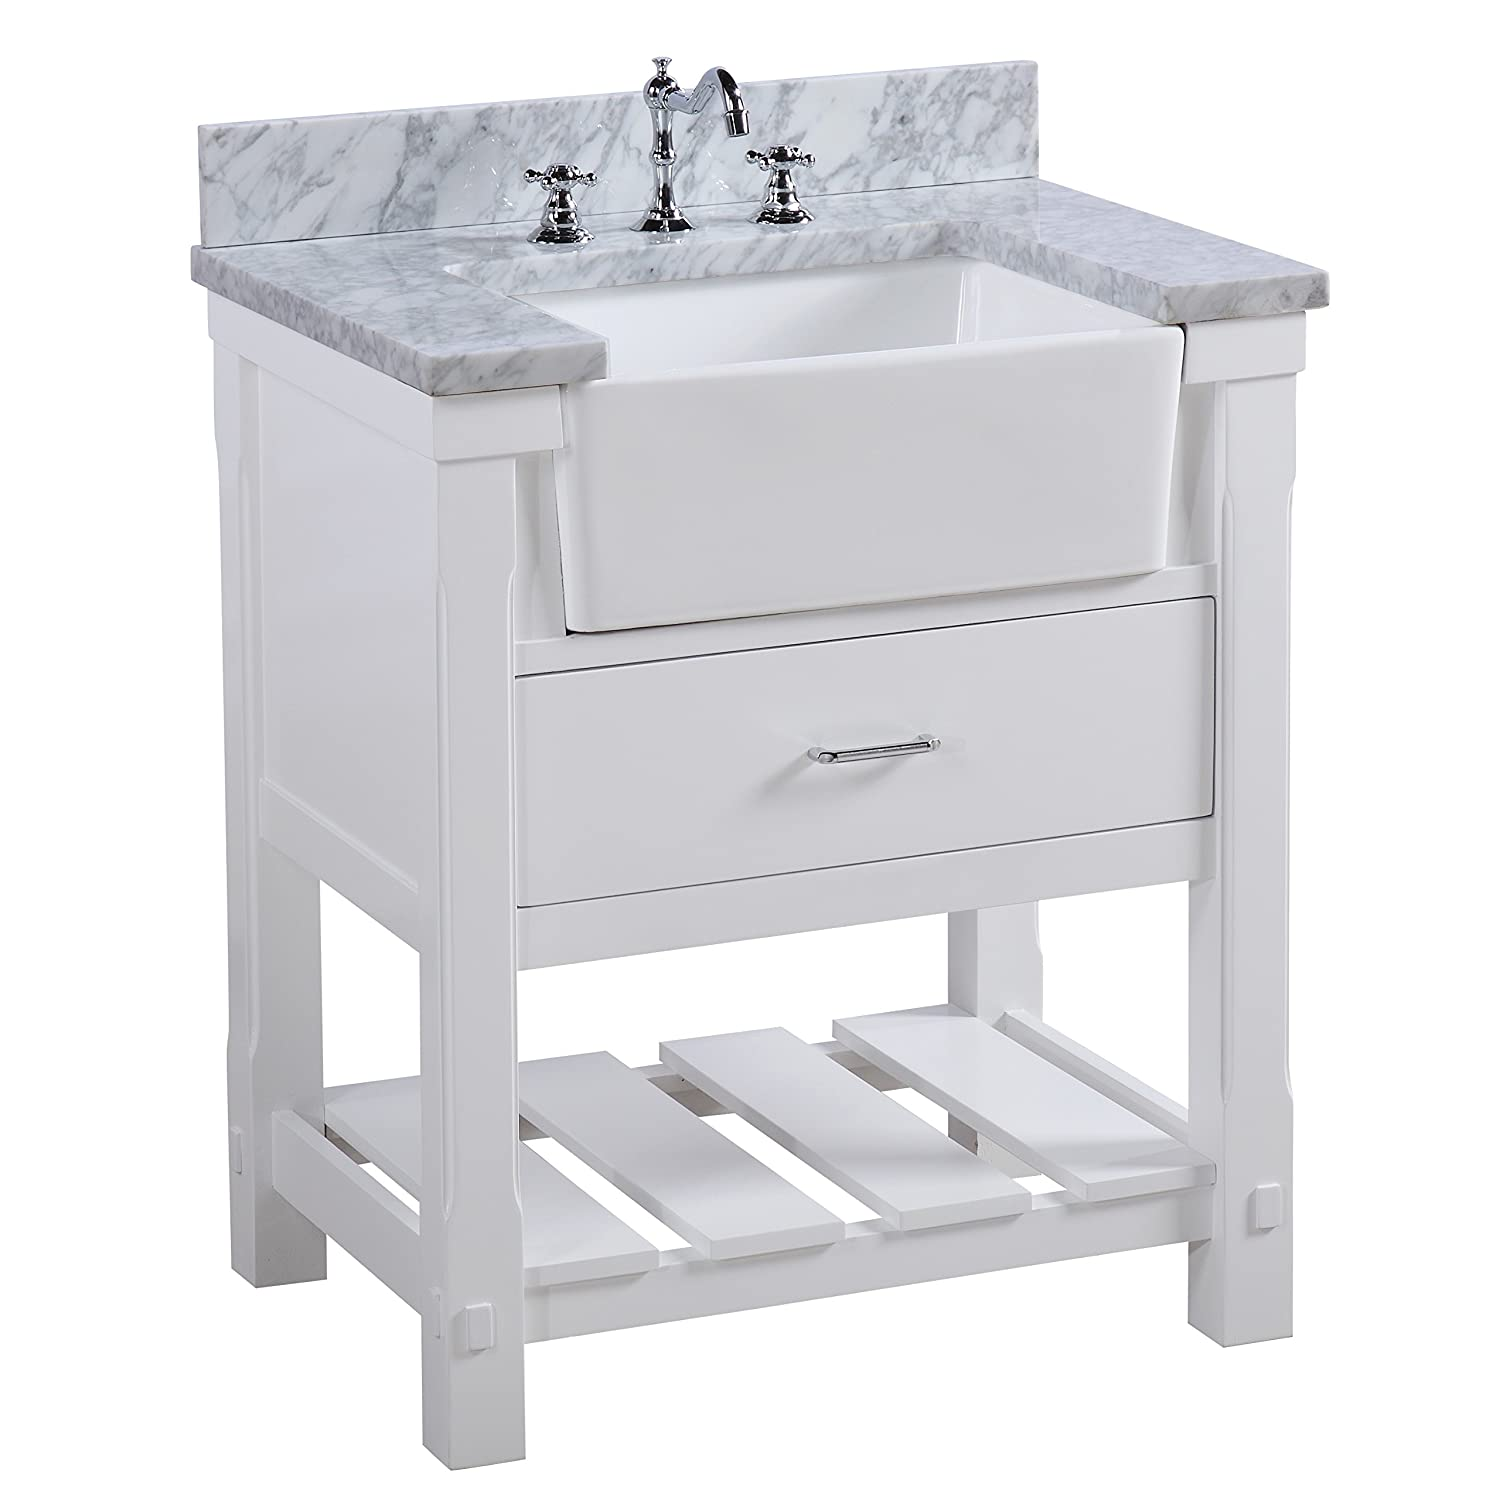 "30"" vanity with farm sink and marble top has a functional drawer for storage and a rustic shelf - modern farmhouse style lovers and vintage fans will love!"